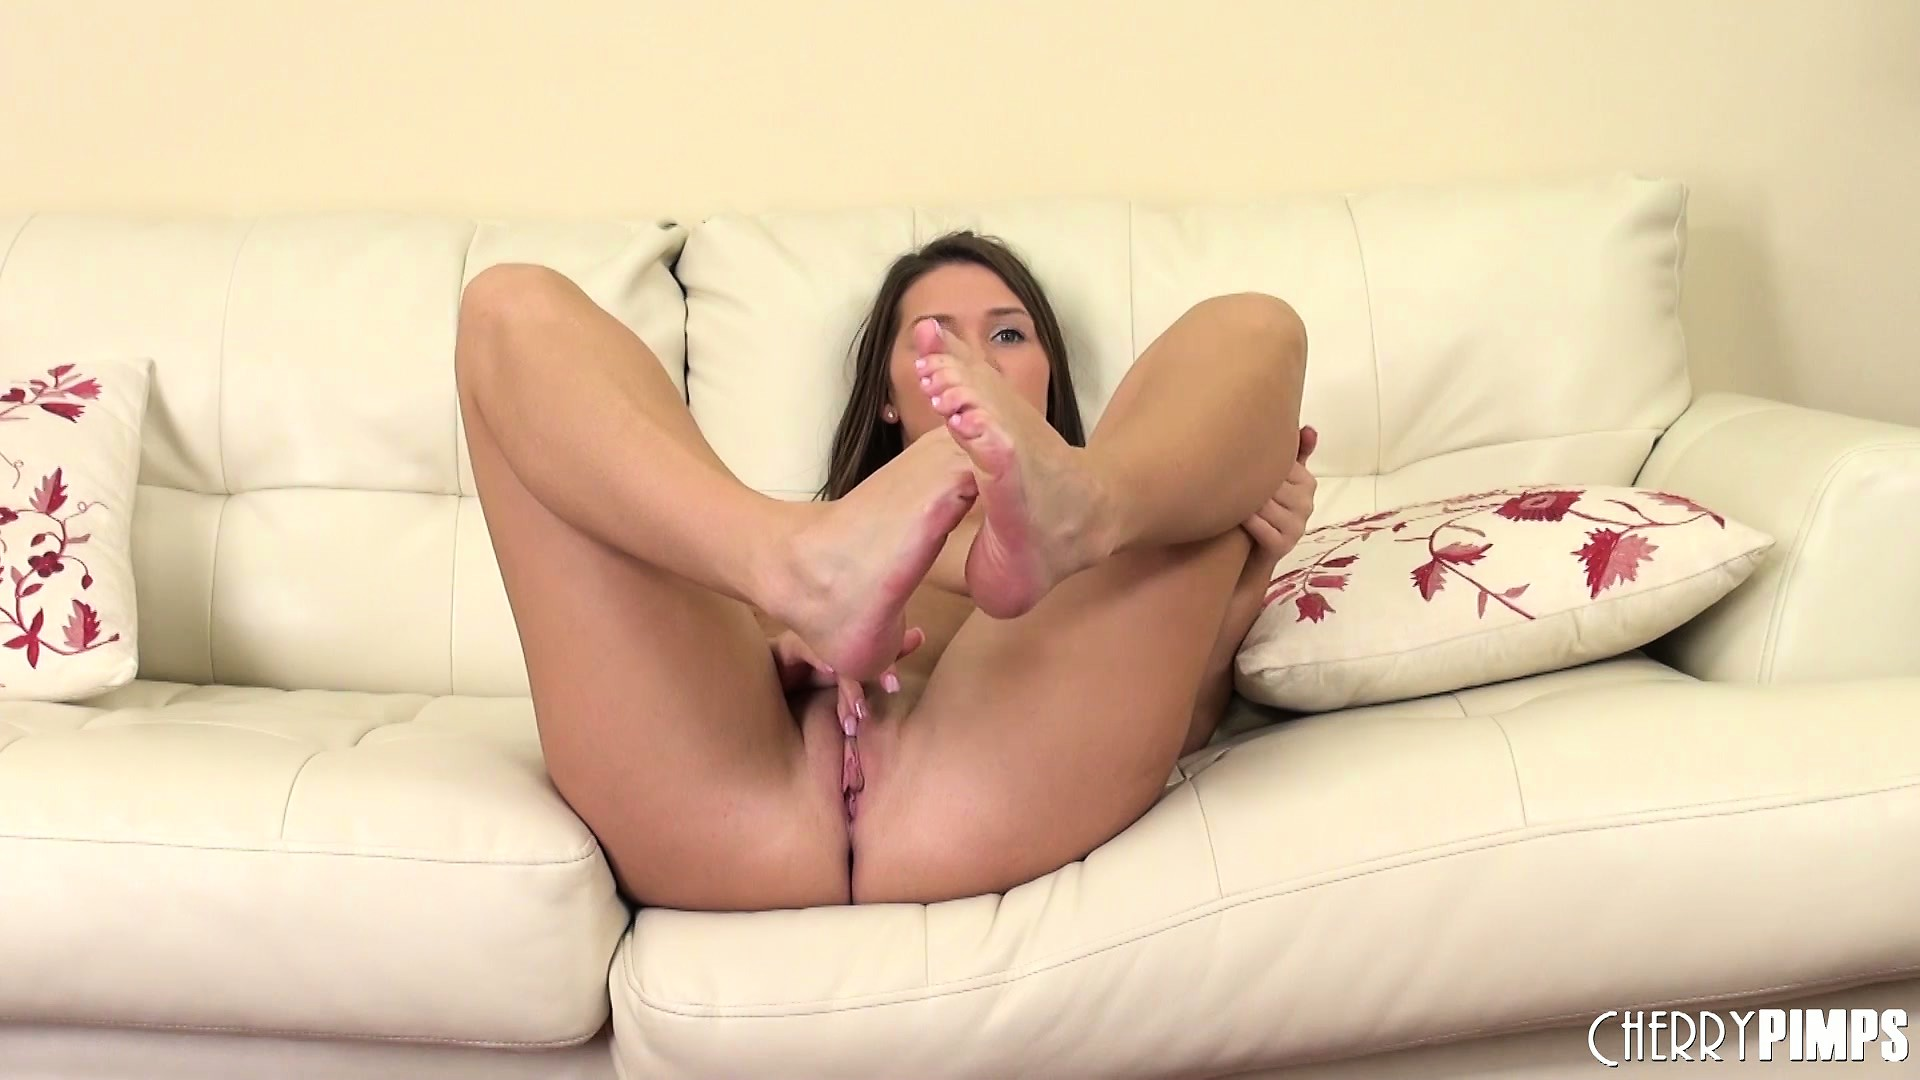 Porn Tube of The Cute Babe Sits On The Couch With A Vibrator Working Its Magic Between Her Legs